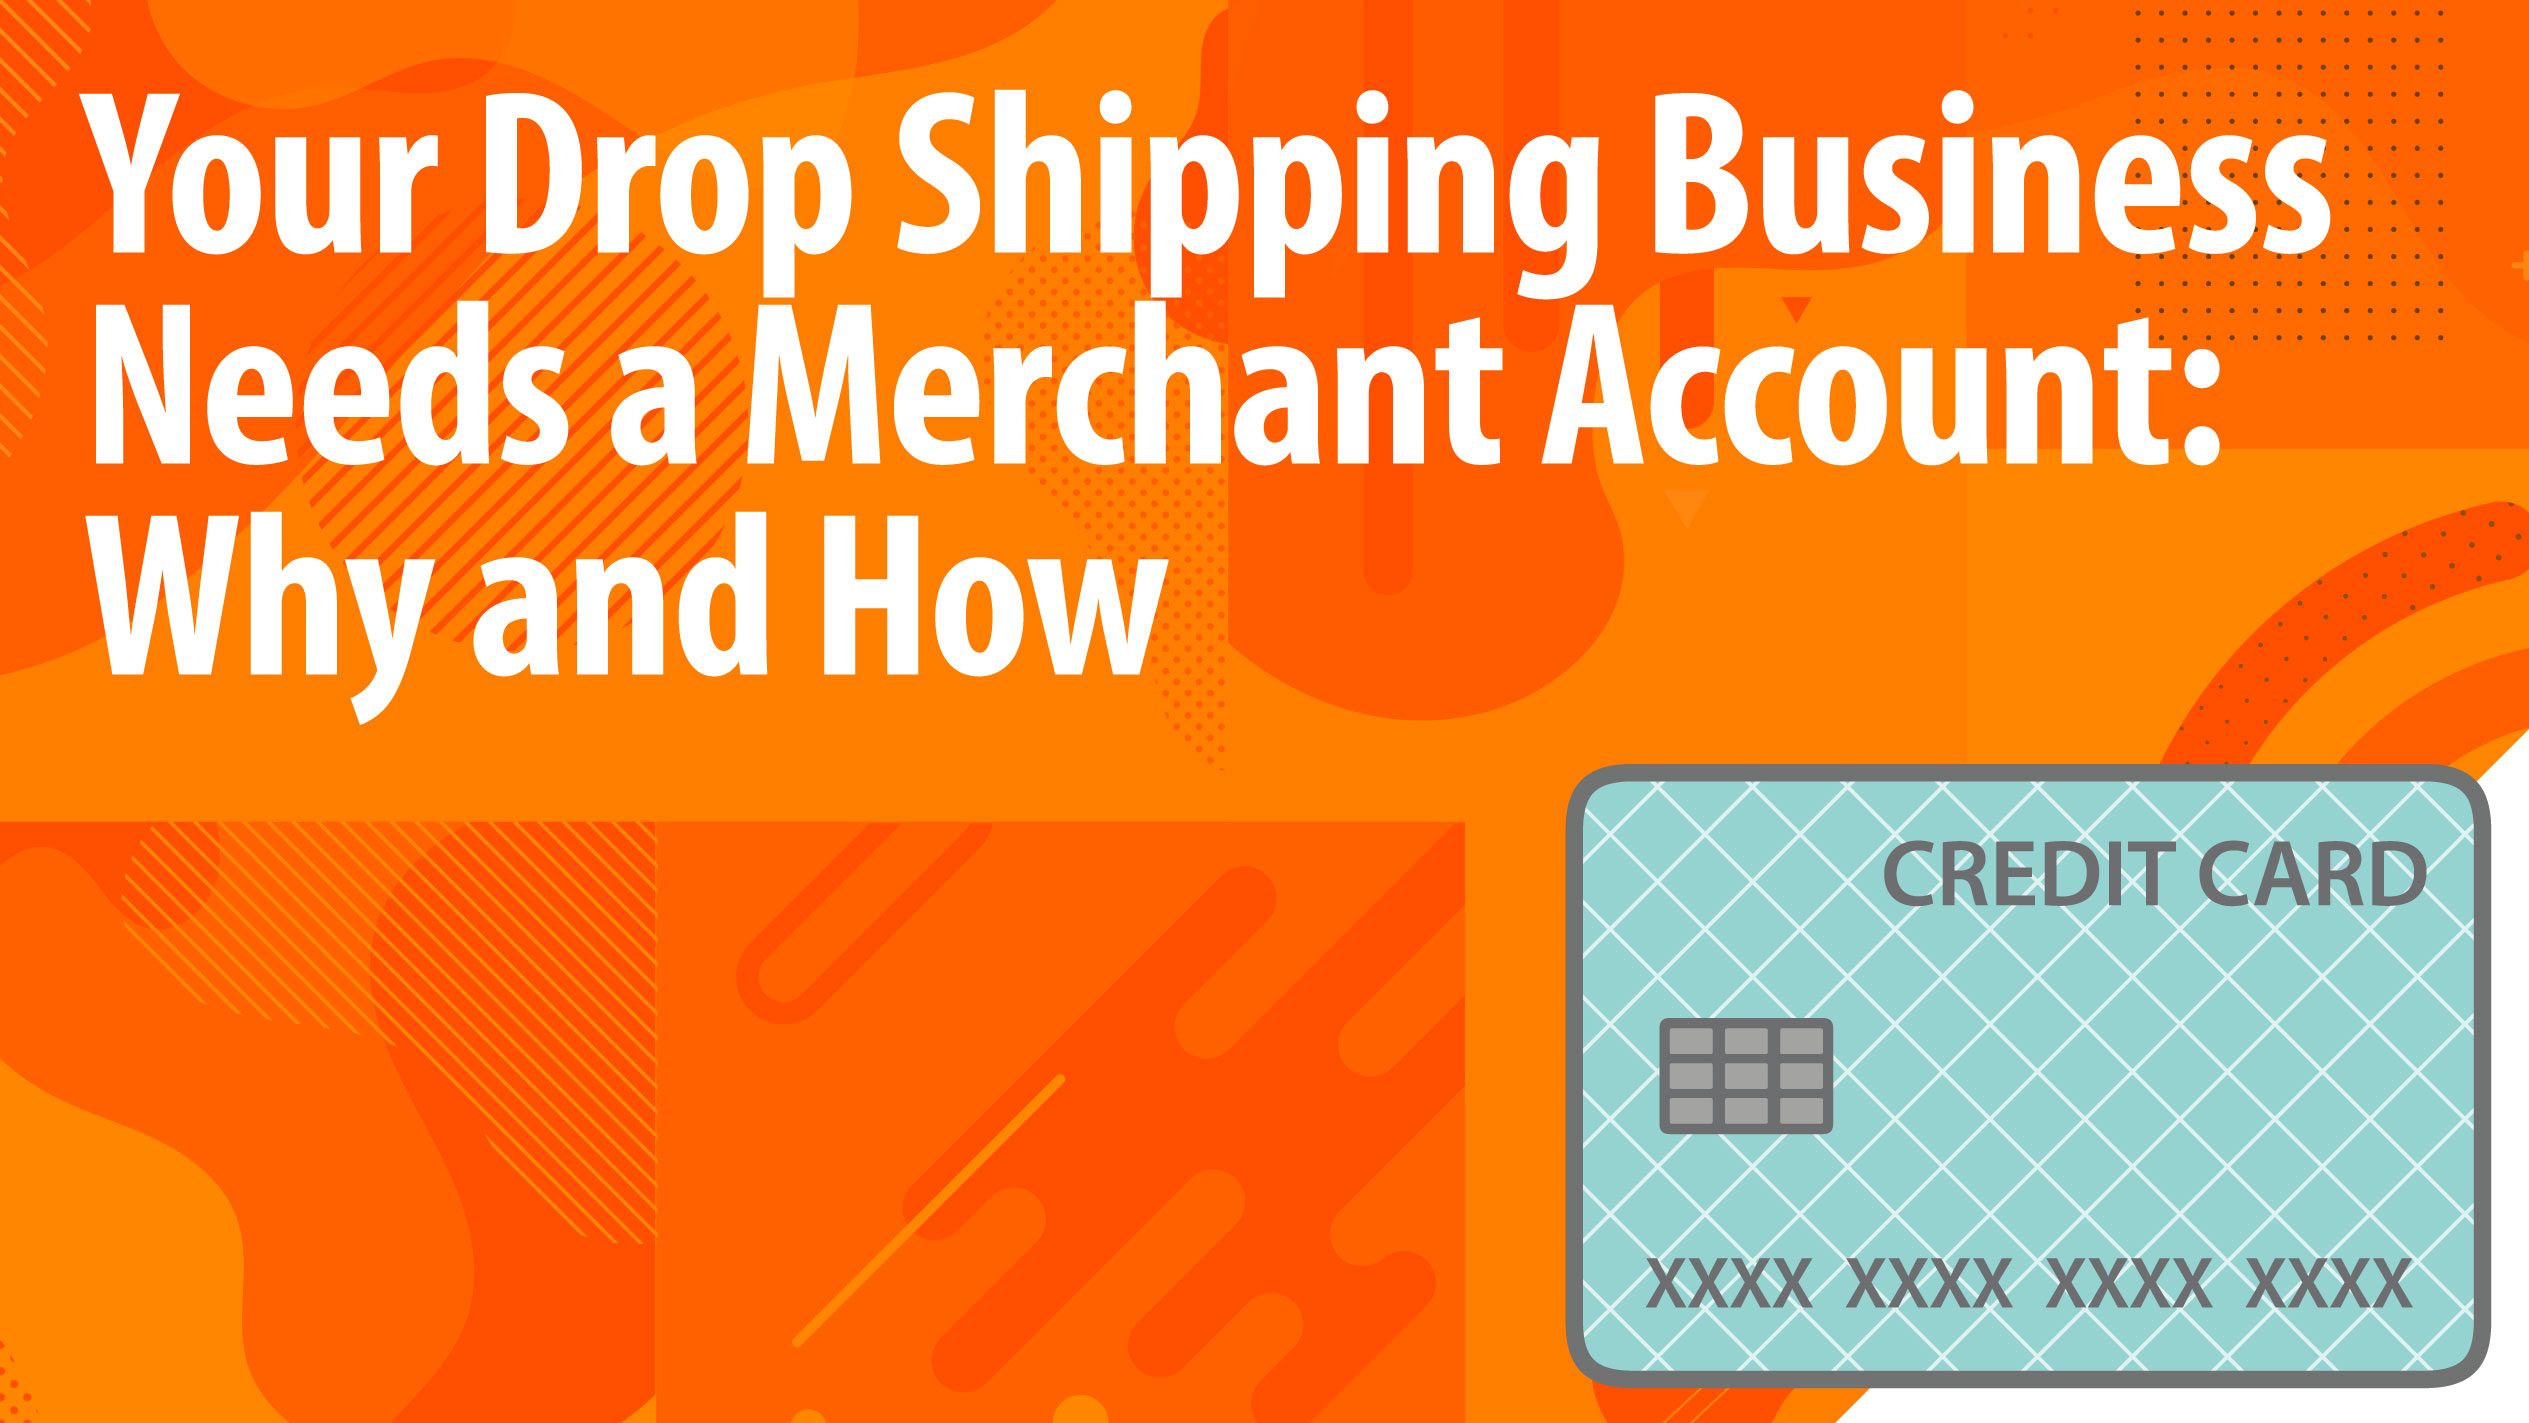 Your Drop Shipping Business Needs a Merchant Account: Why and How